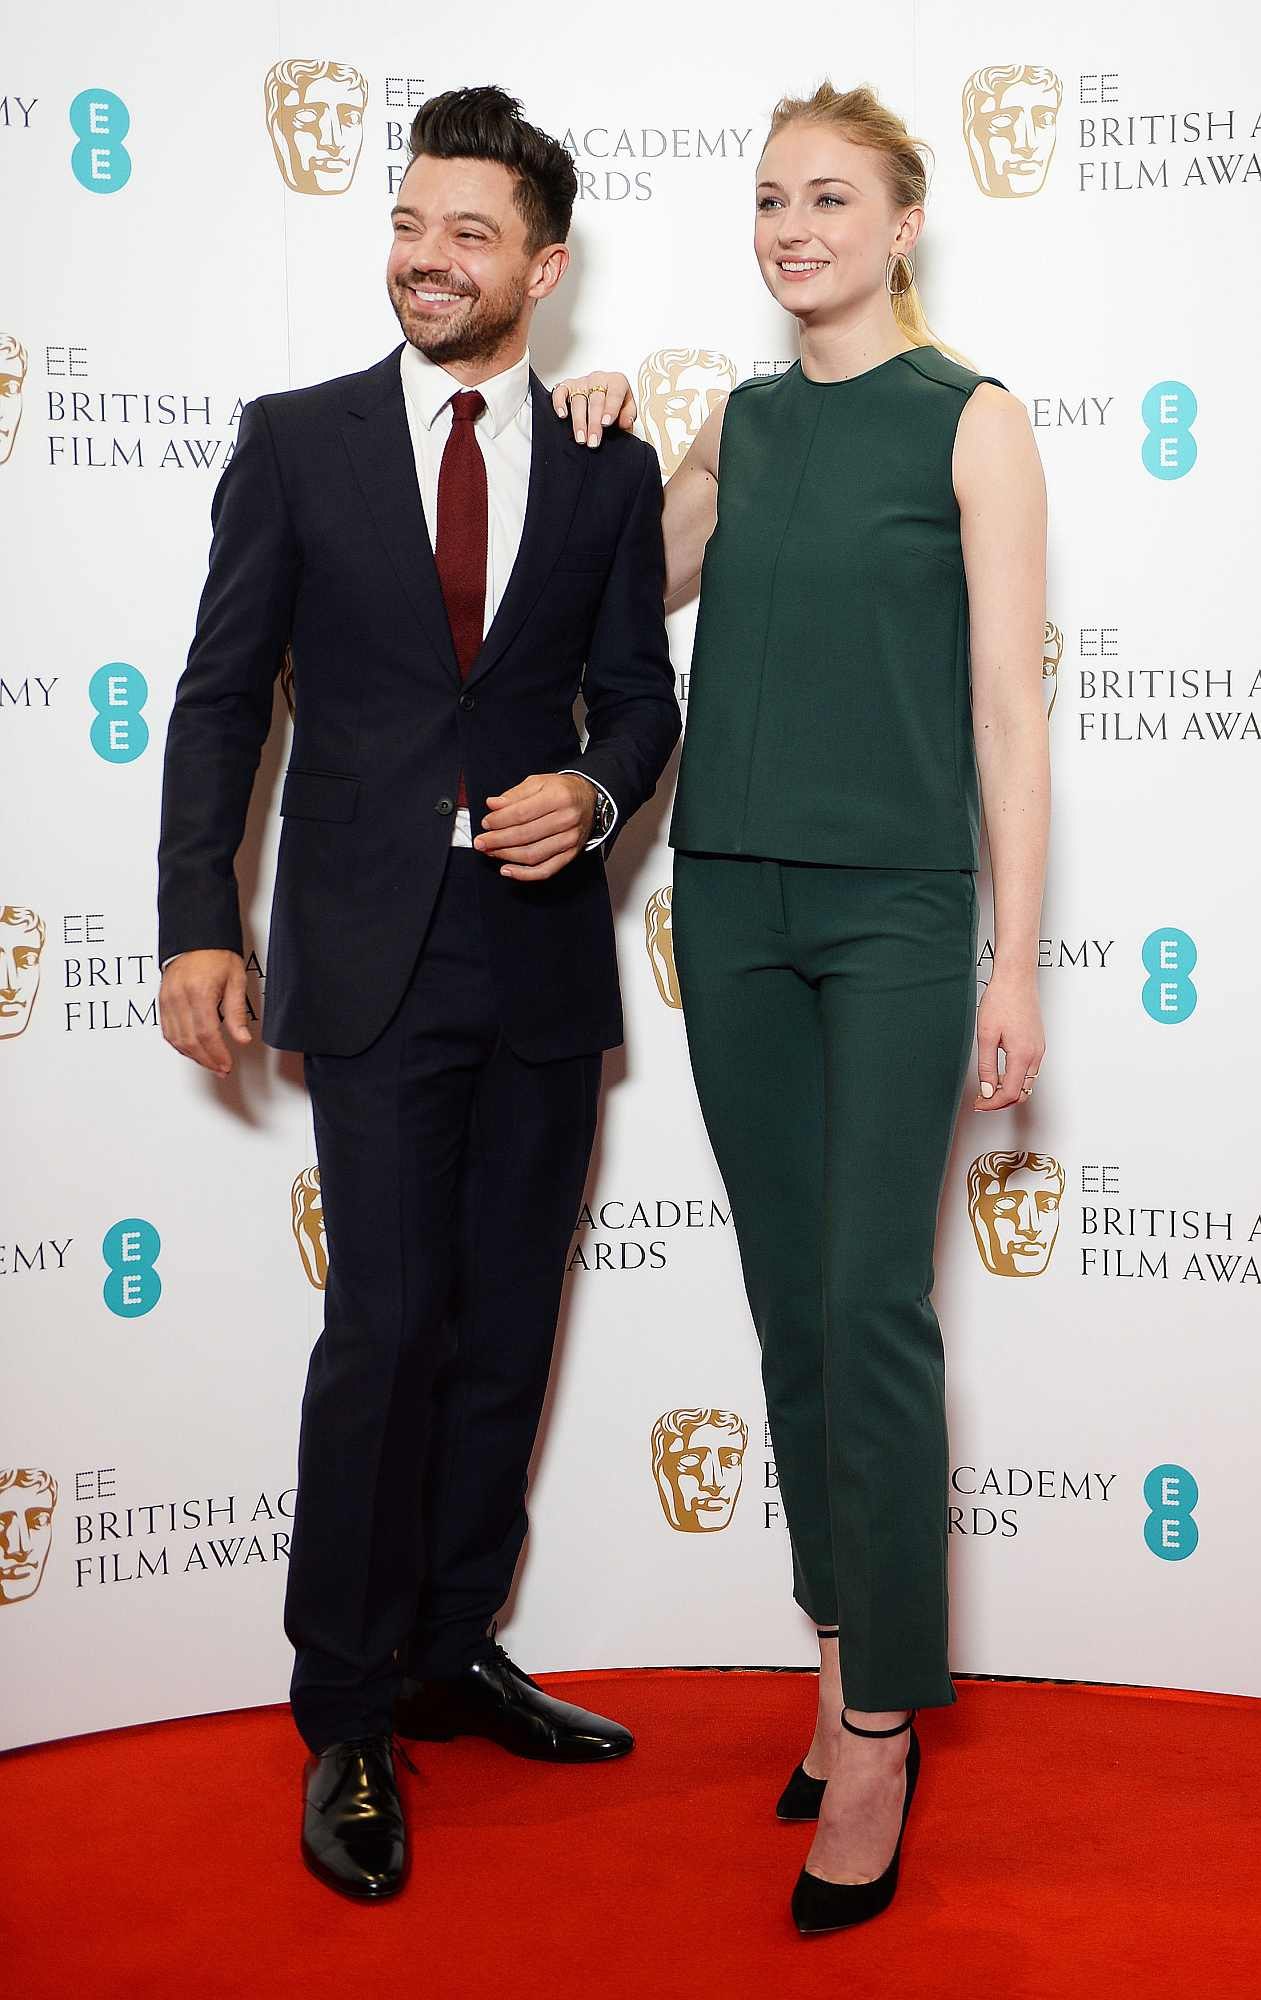 Dominic Cooper and Sophie Turner attending the EE British Academy Awards nominations announcement at BAFTA, London.